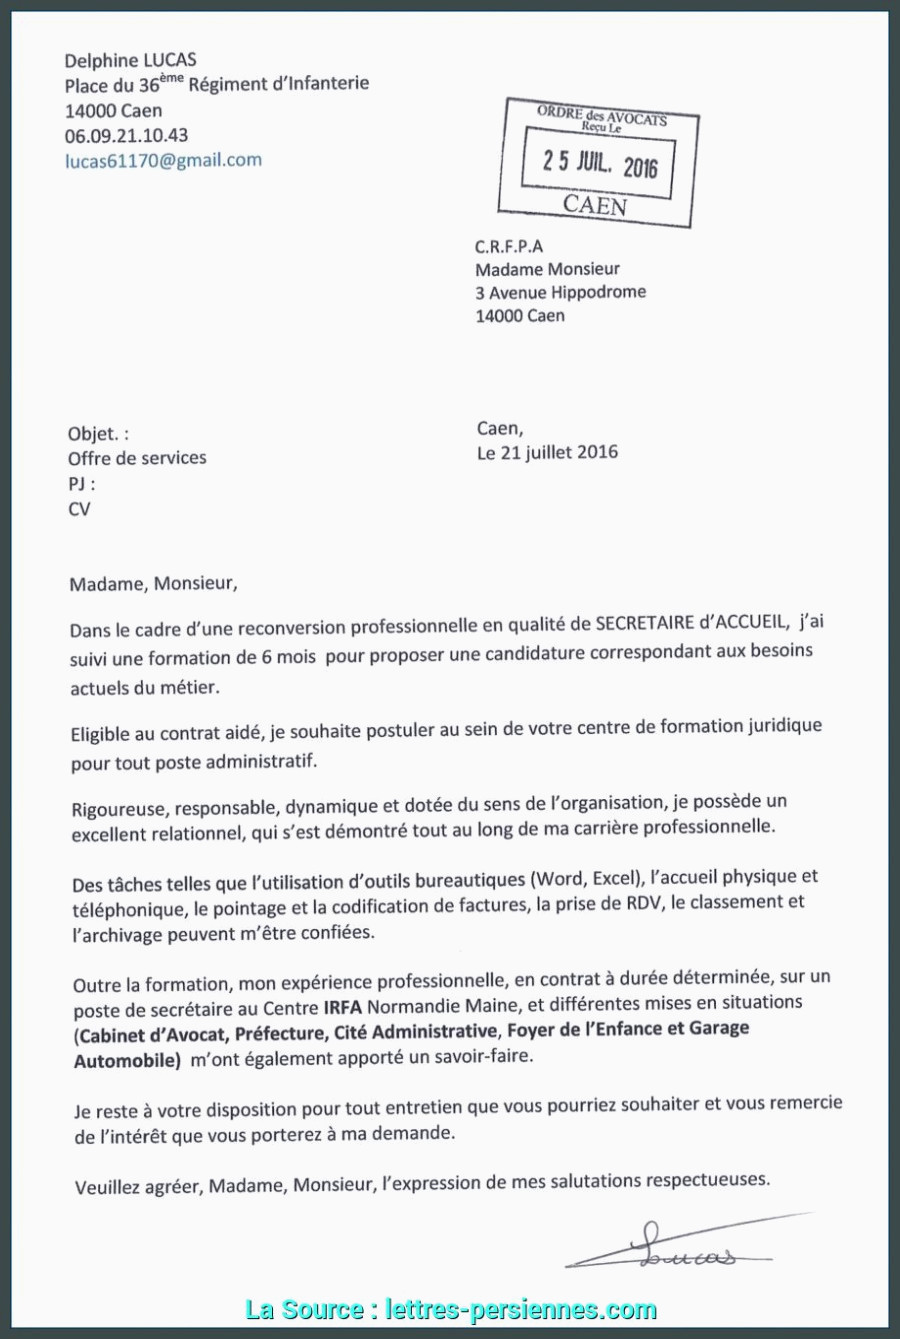 Lettre De Motivation Reconversion Professionnelle Parfait Lettre De Motivation Demande De formation Reconversion